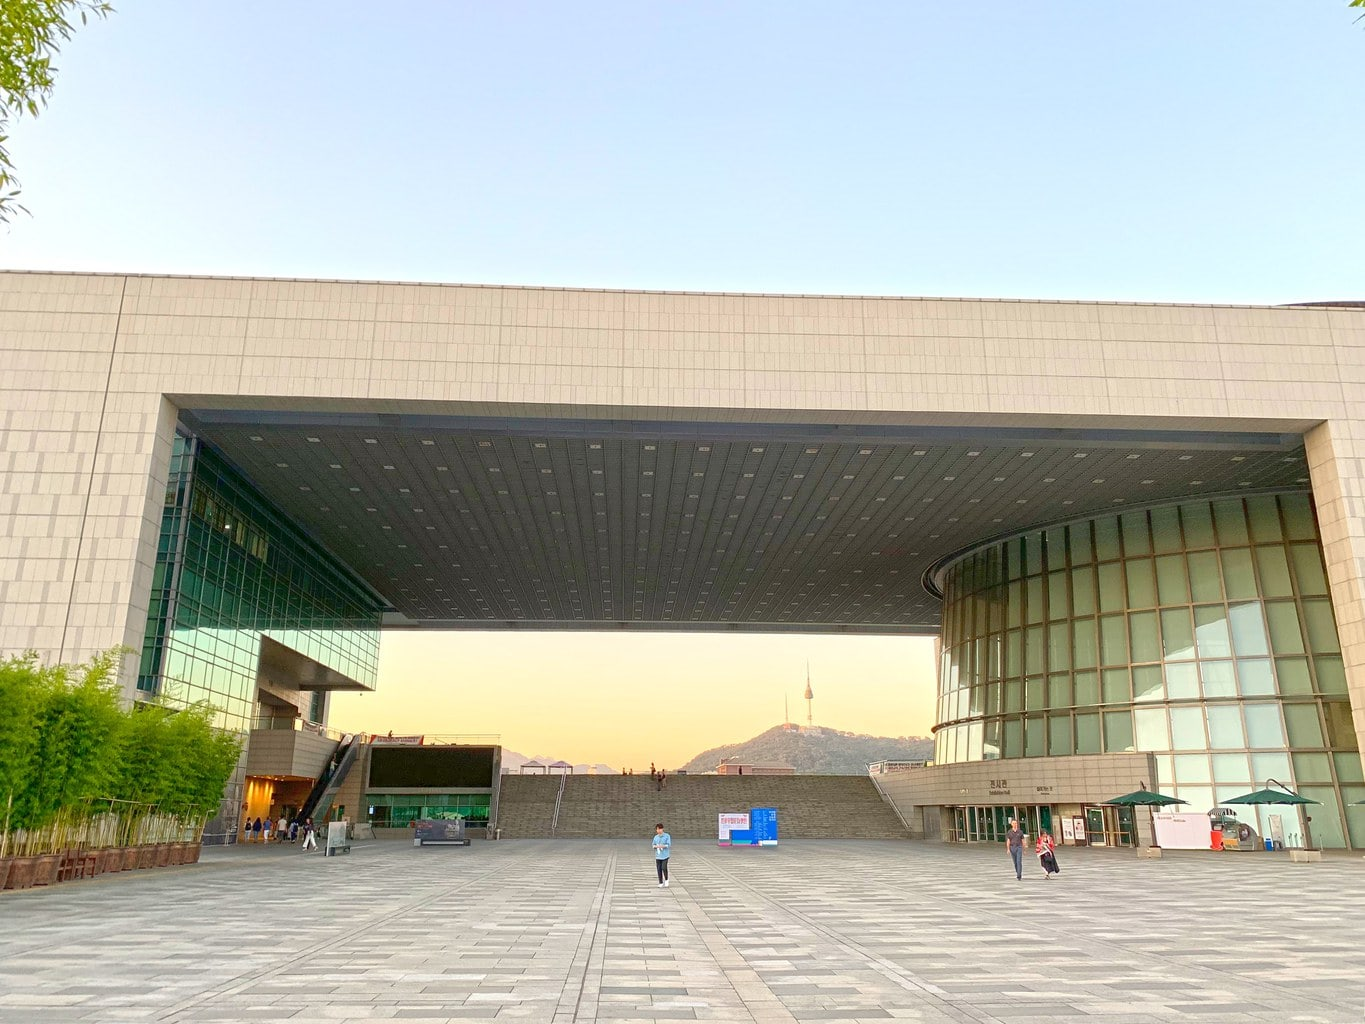 The massive National Museum of Korea